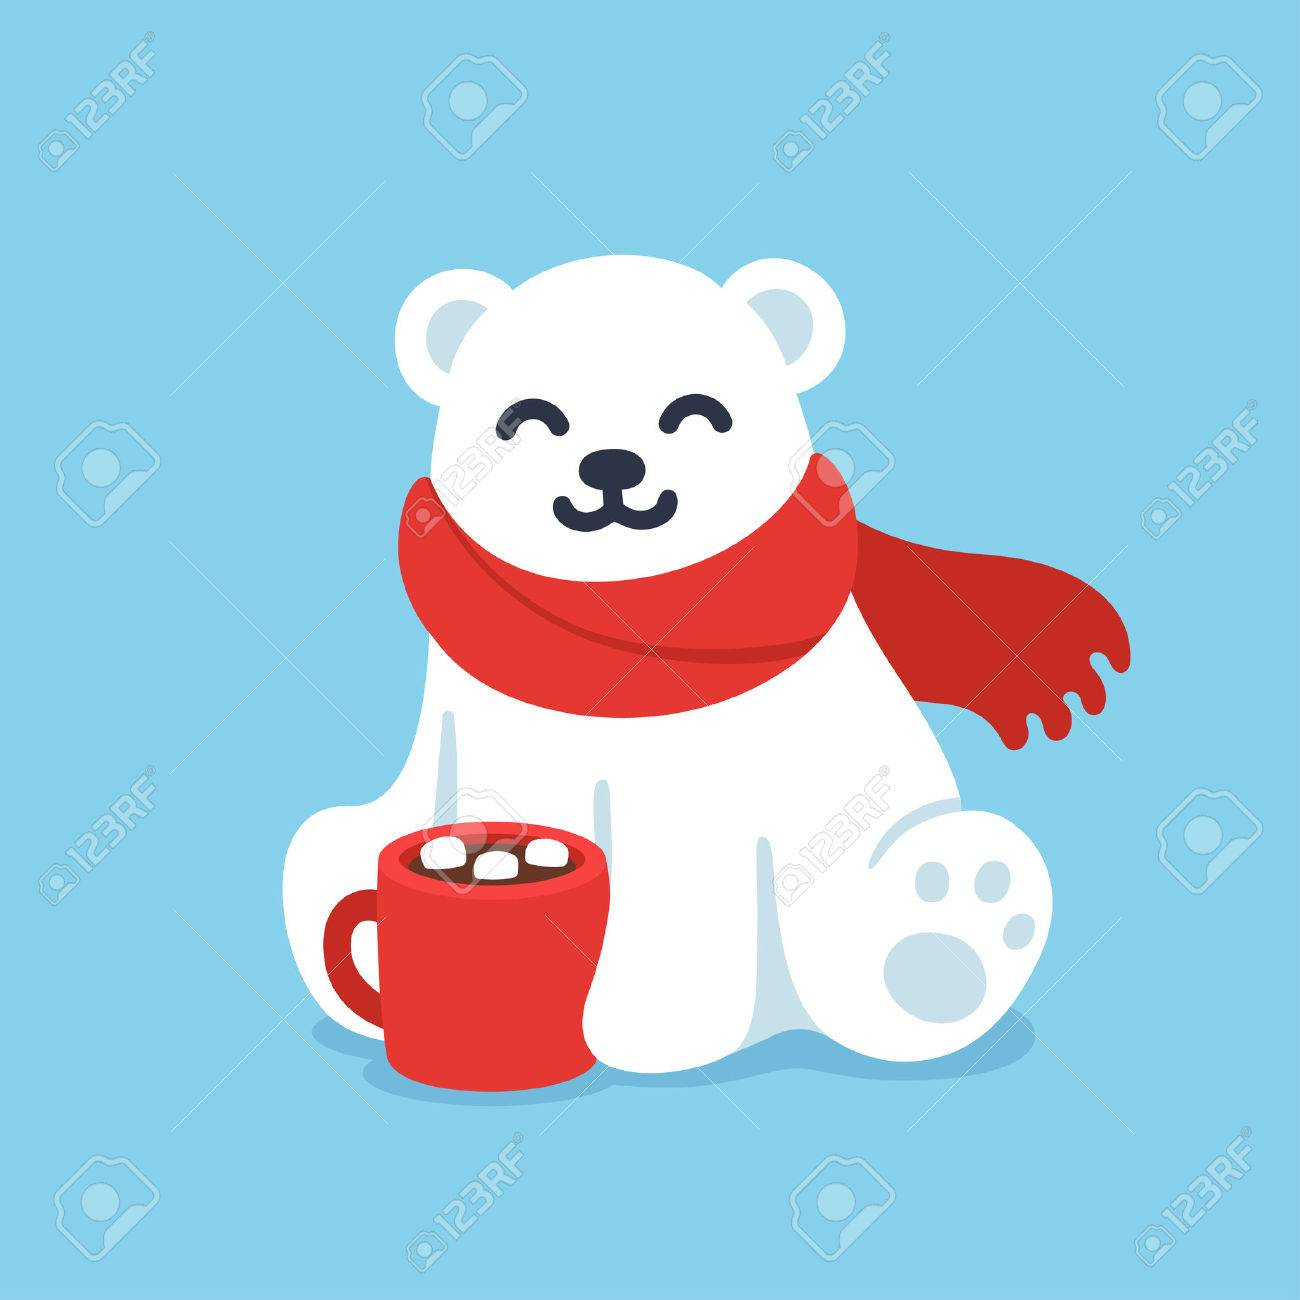 Cute cartoon polar bear in red scarf with hot chocolate cup. Christmas and winter holidays greeting card vector illustration. - 67688504